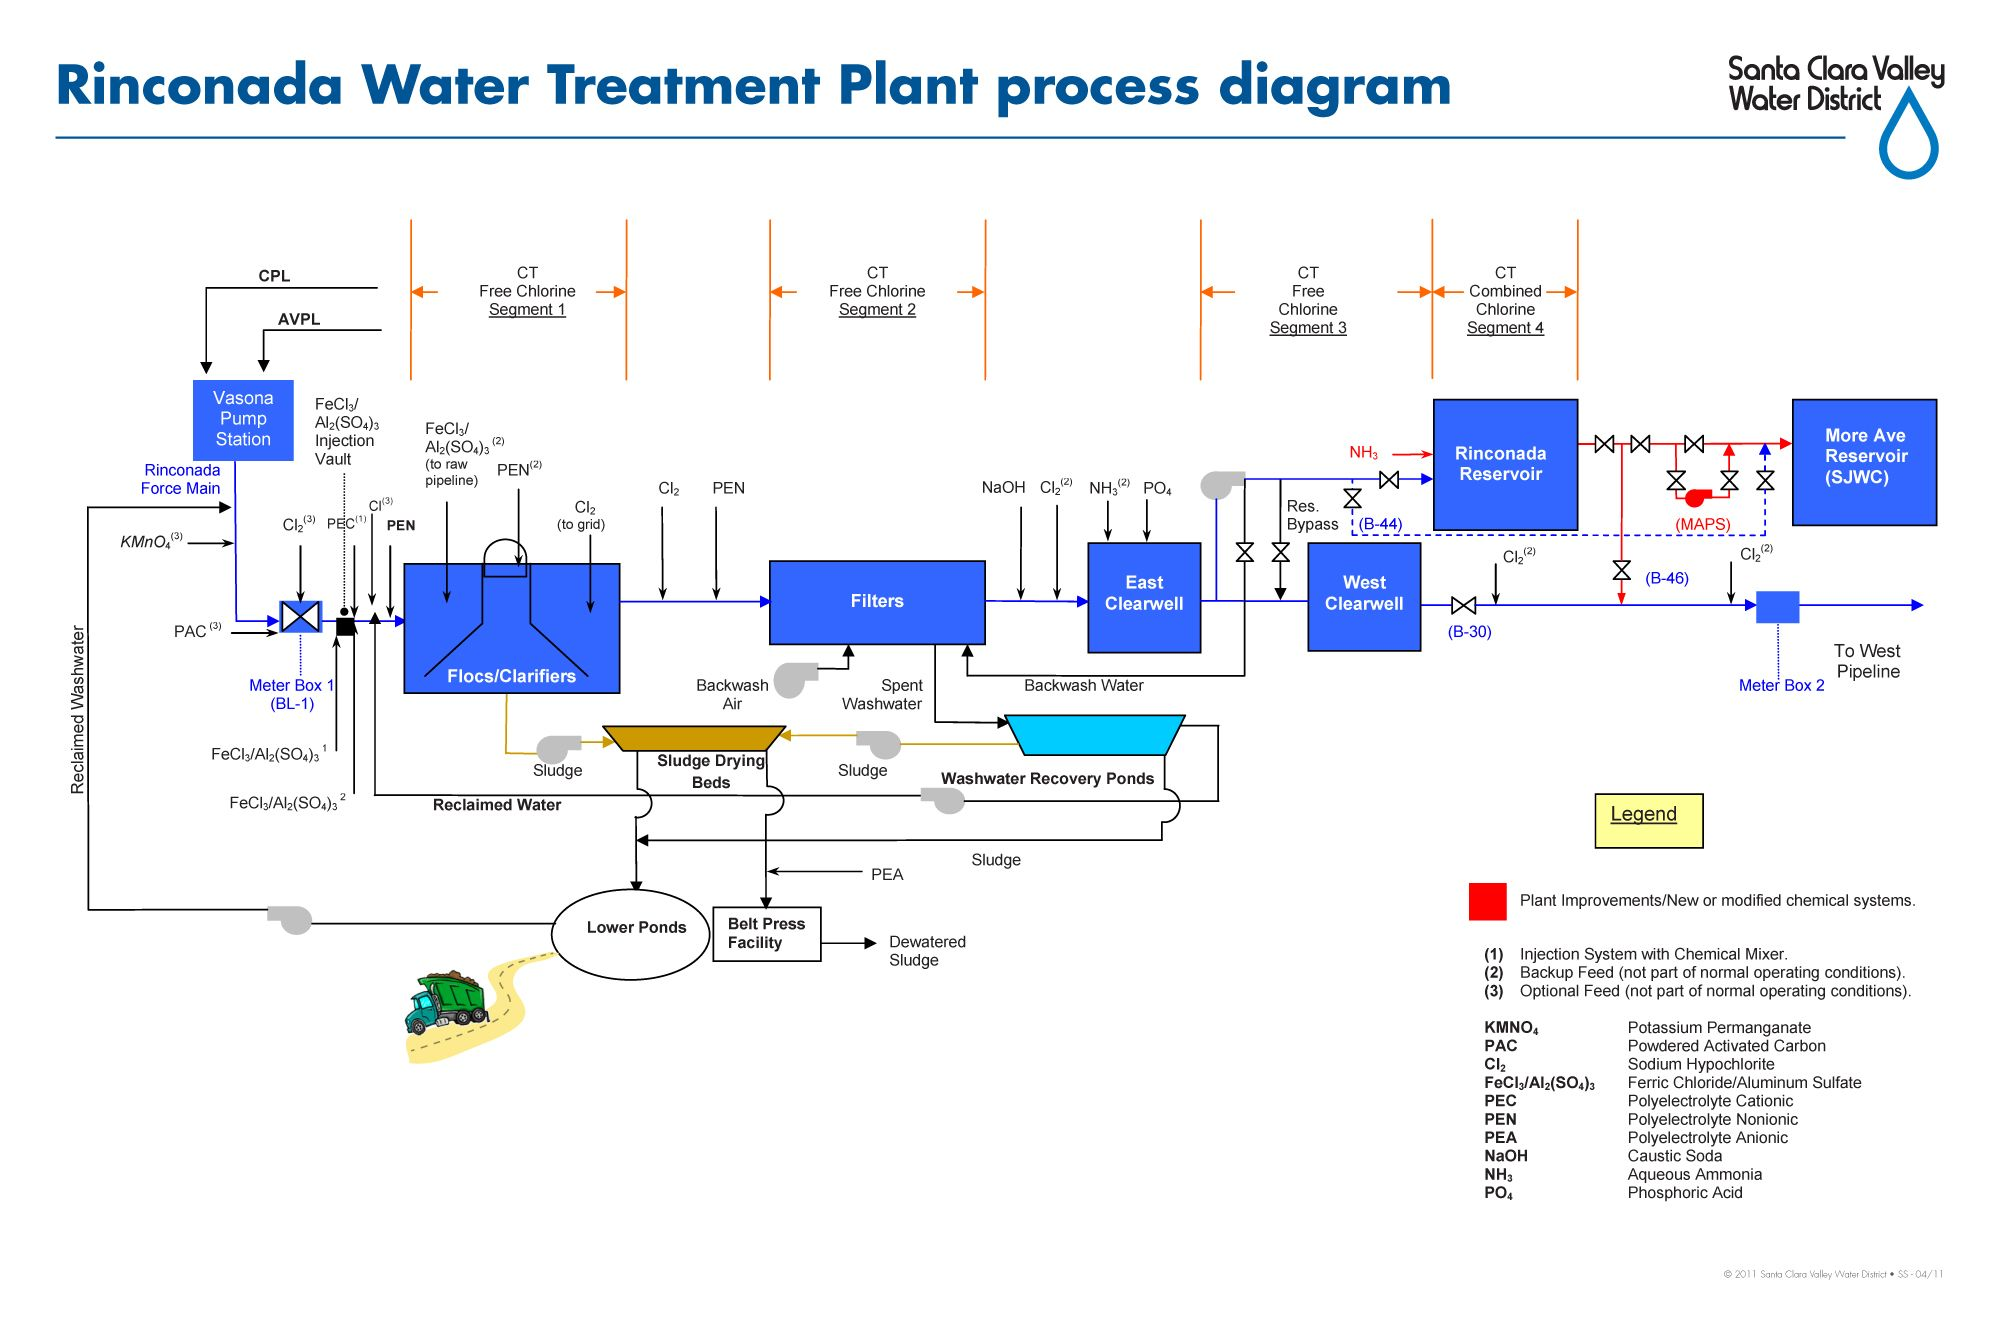 rinconada water treatment plant process diagram water treatment rh pinterest com diagram of distilled water plant diagram of a water leaf plant [ 2000 x 1333 Pixel ]